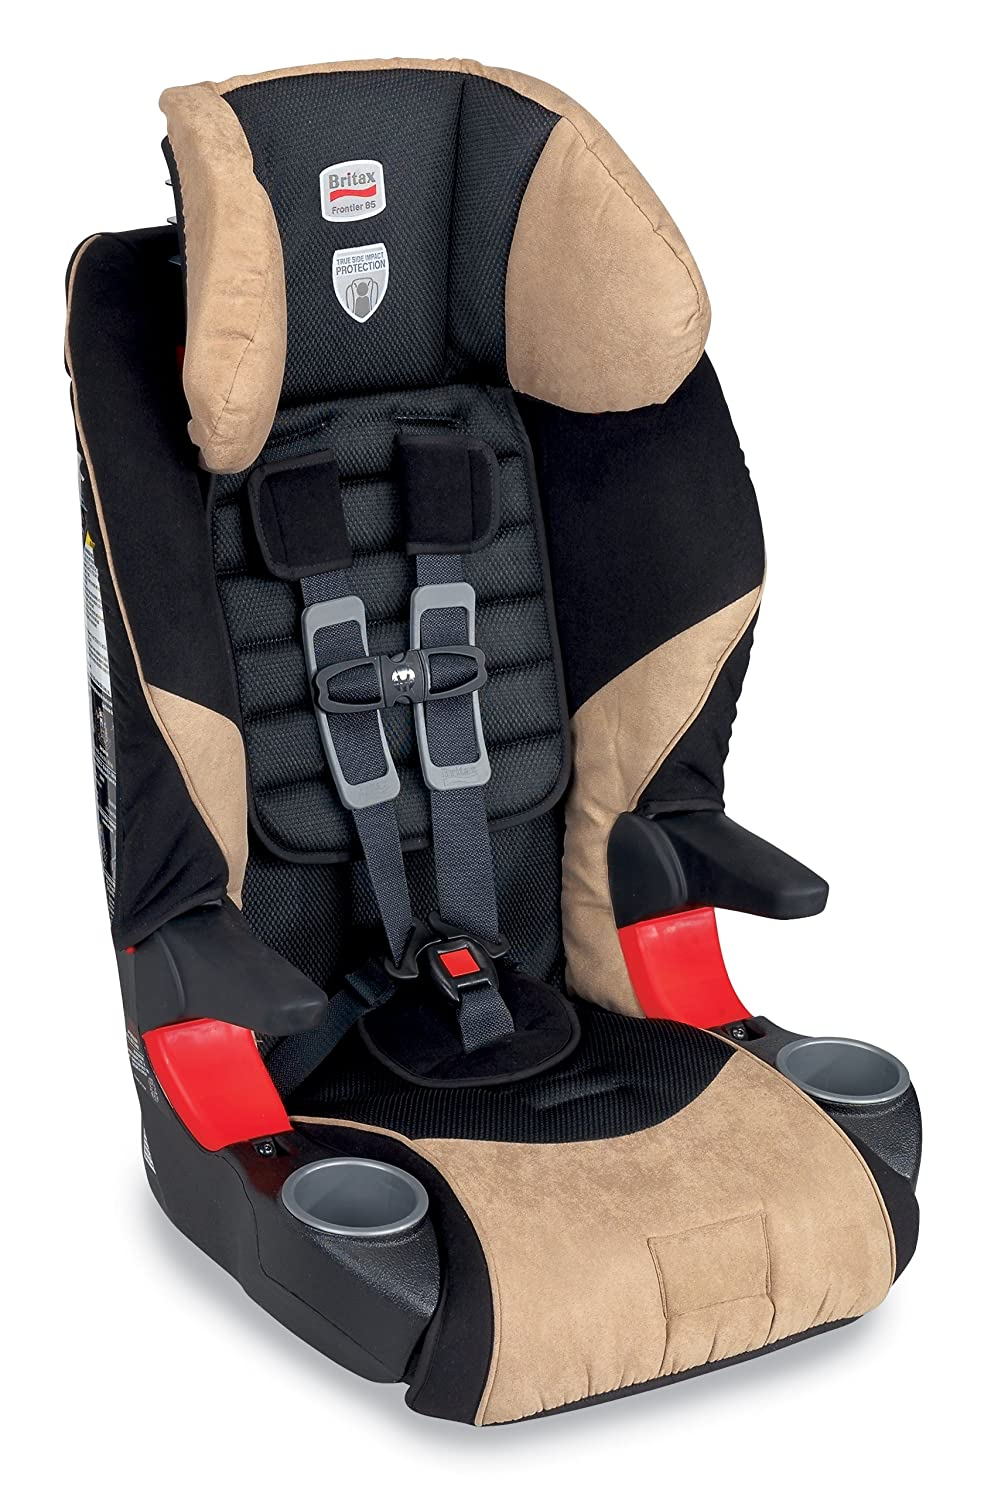 Britax Frontier 85 Combination Booster Car Seat, Canyon $195.00